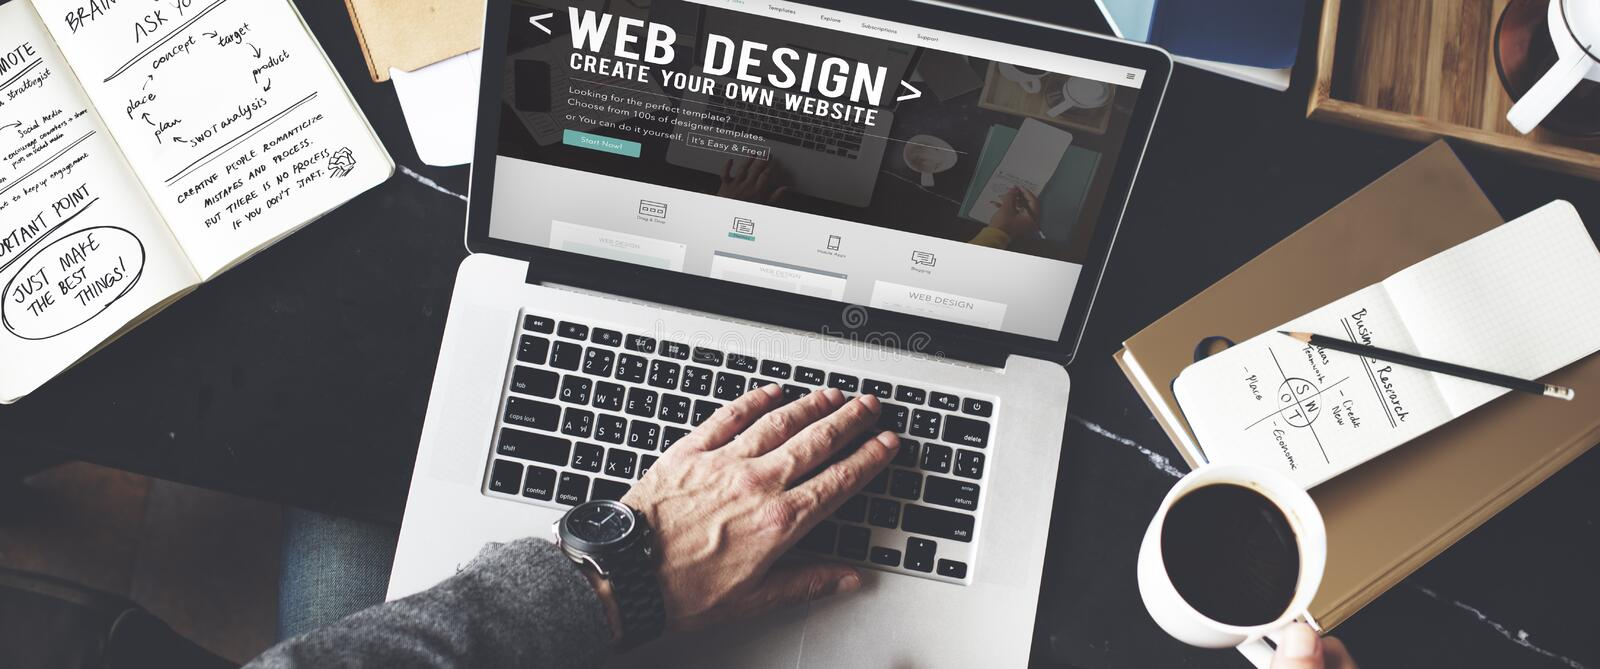 Web Desegn Ideas Creativity Internet Online Multimedia Concept stock photo